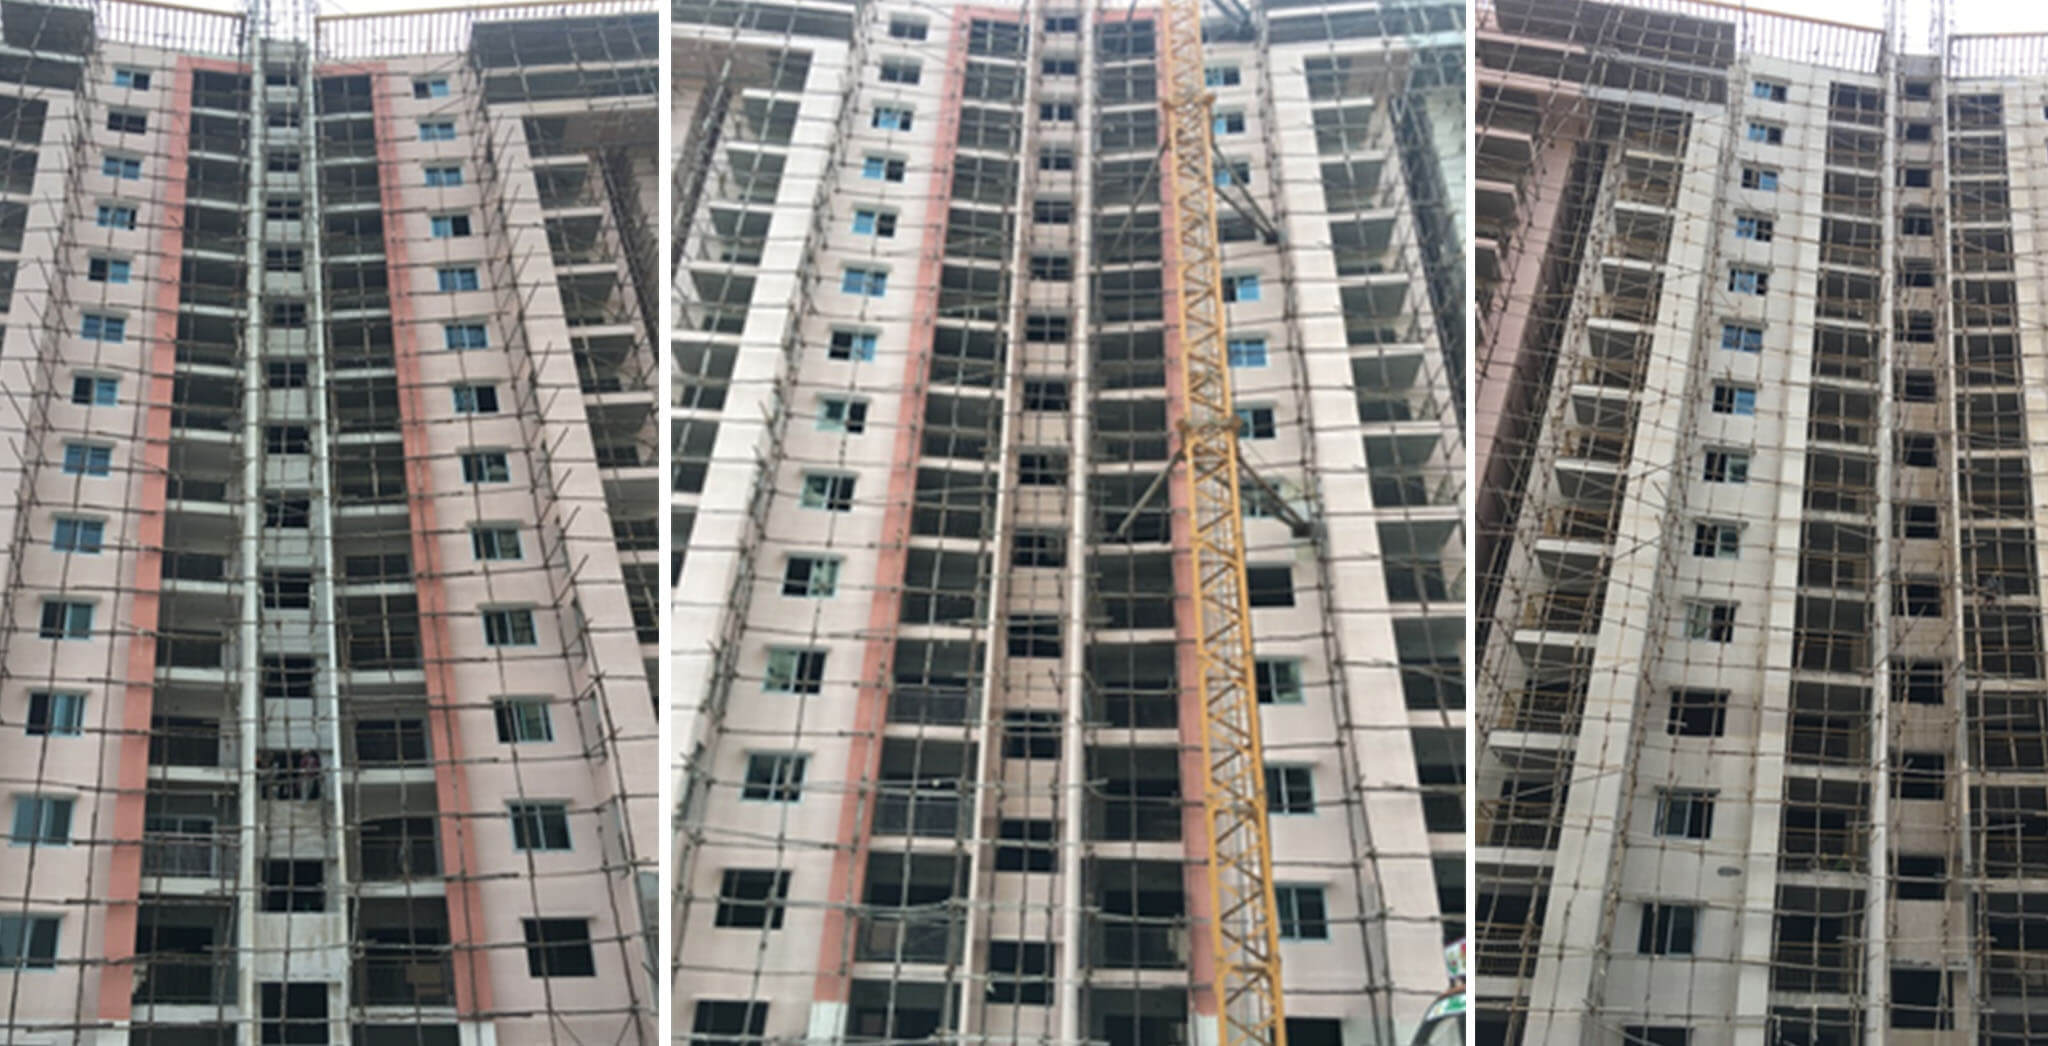 Crimson block—R, Q and P wing external painting in progress